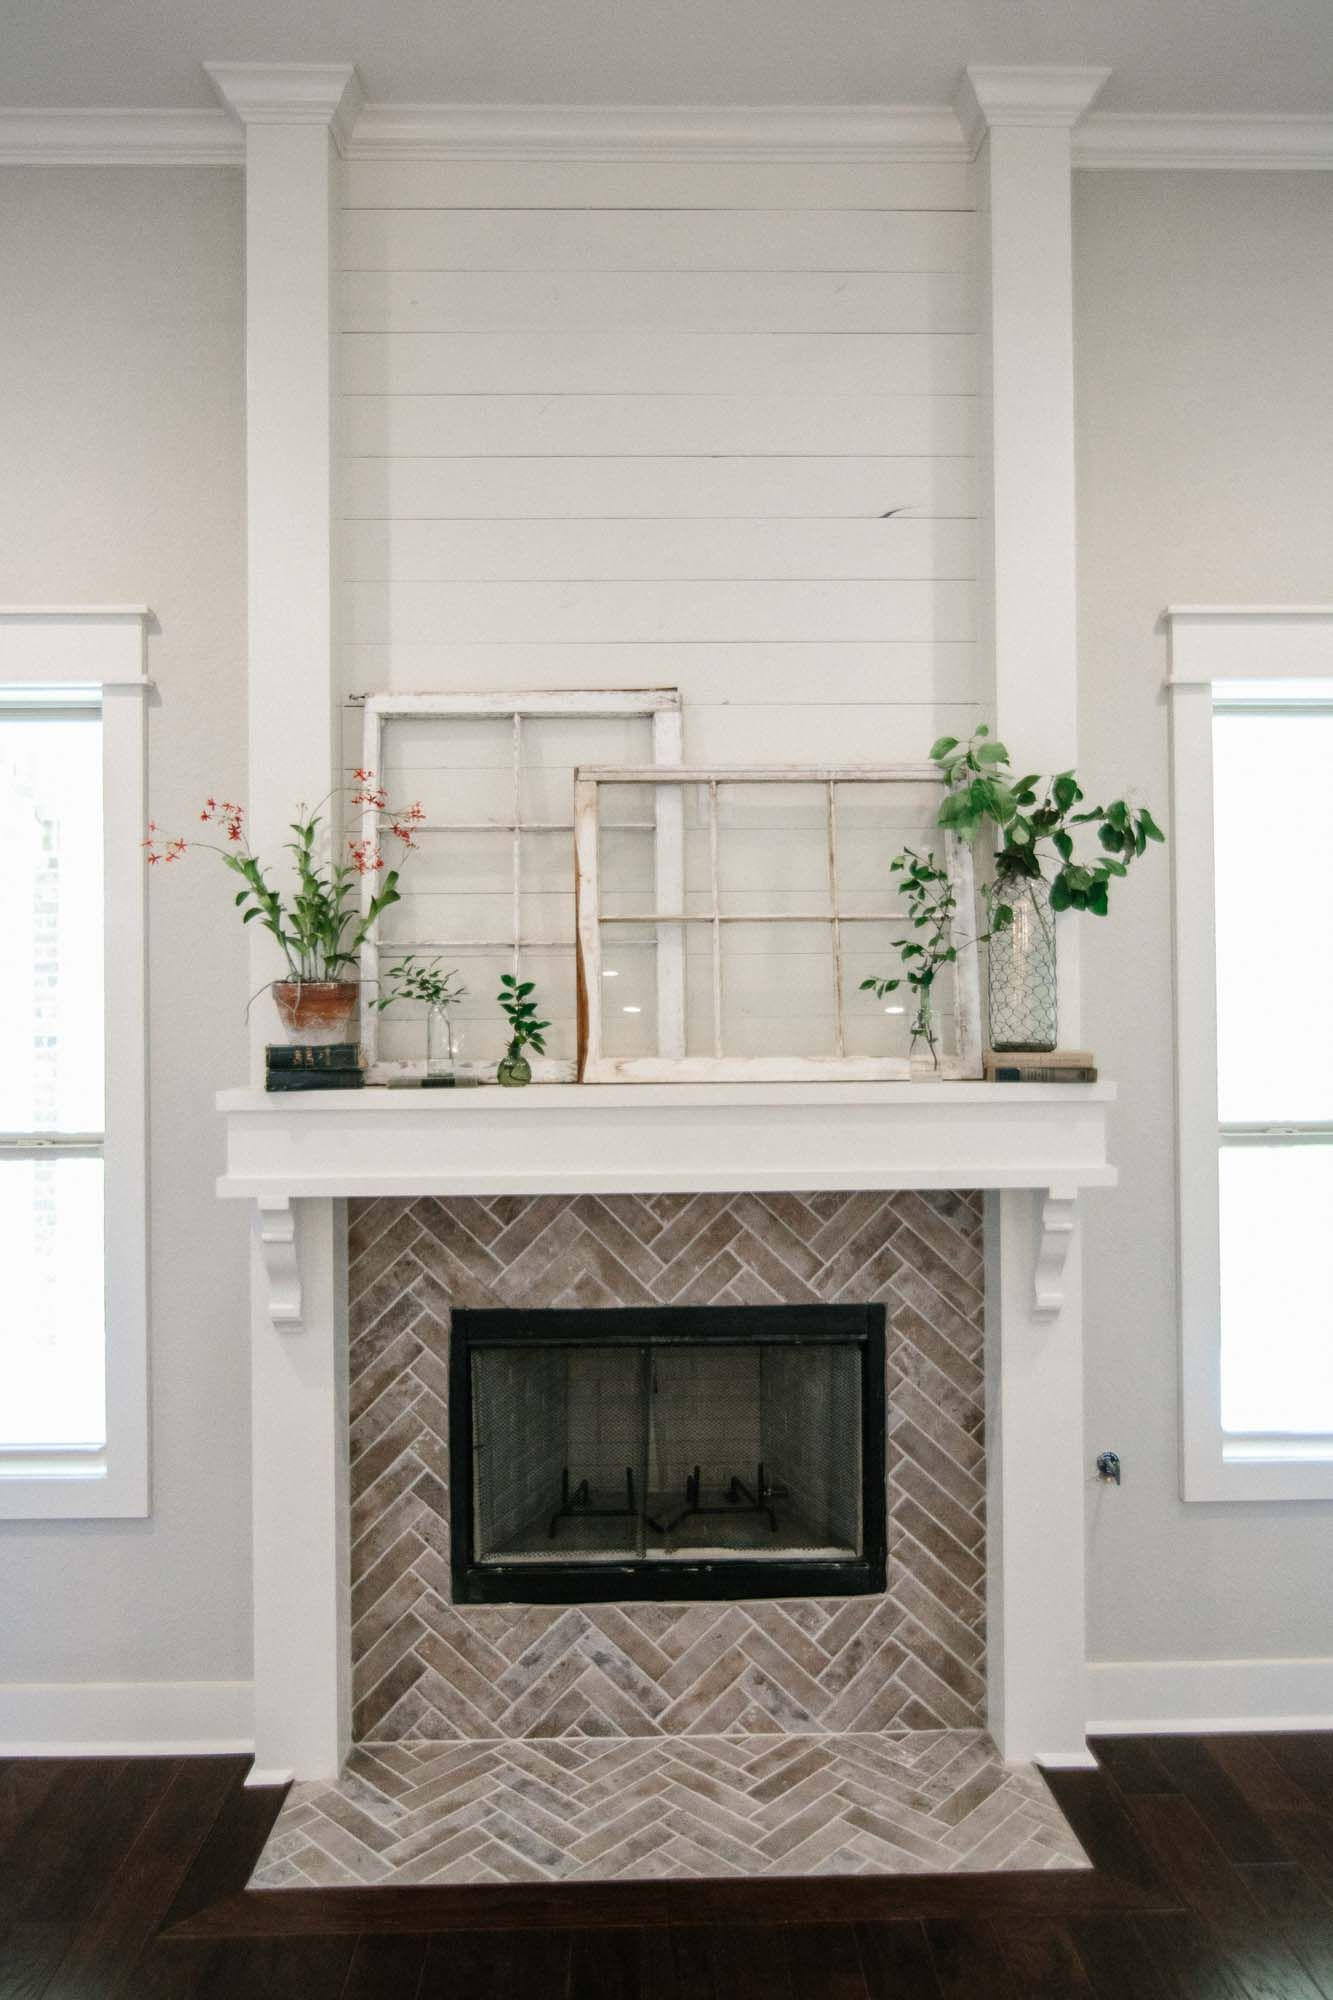 Fireplace Inspiration White Shiplap Herringbone Brick Brick Fireplace Makeover Brick Fireplace White Brick Fireplace